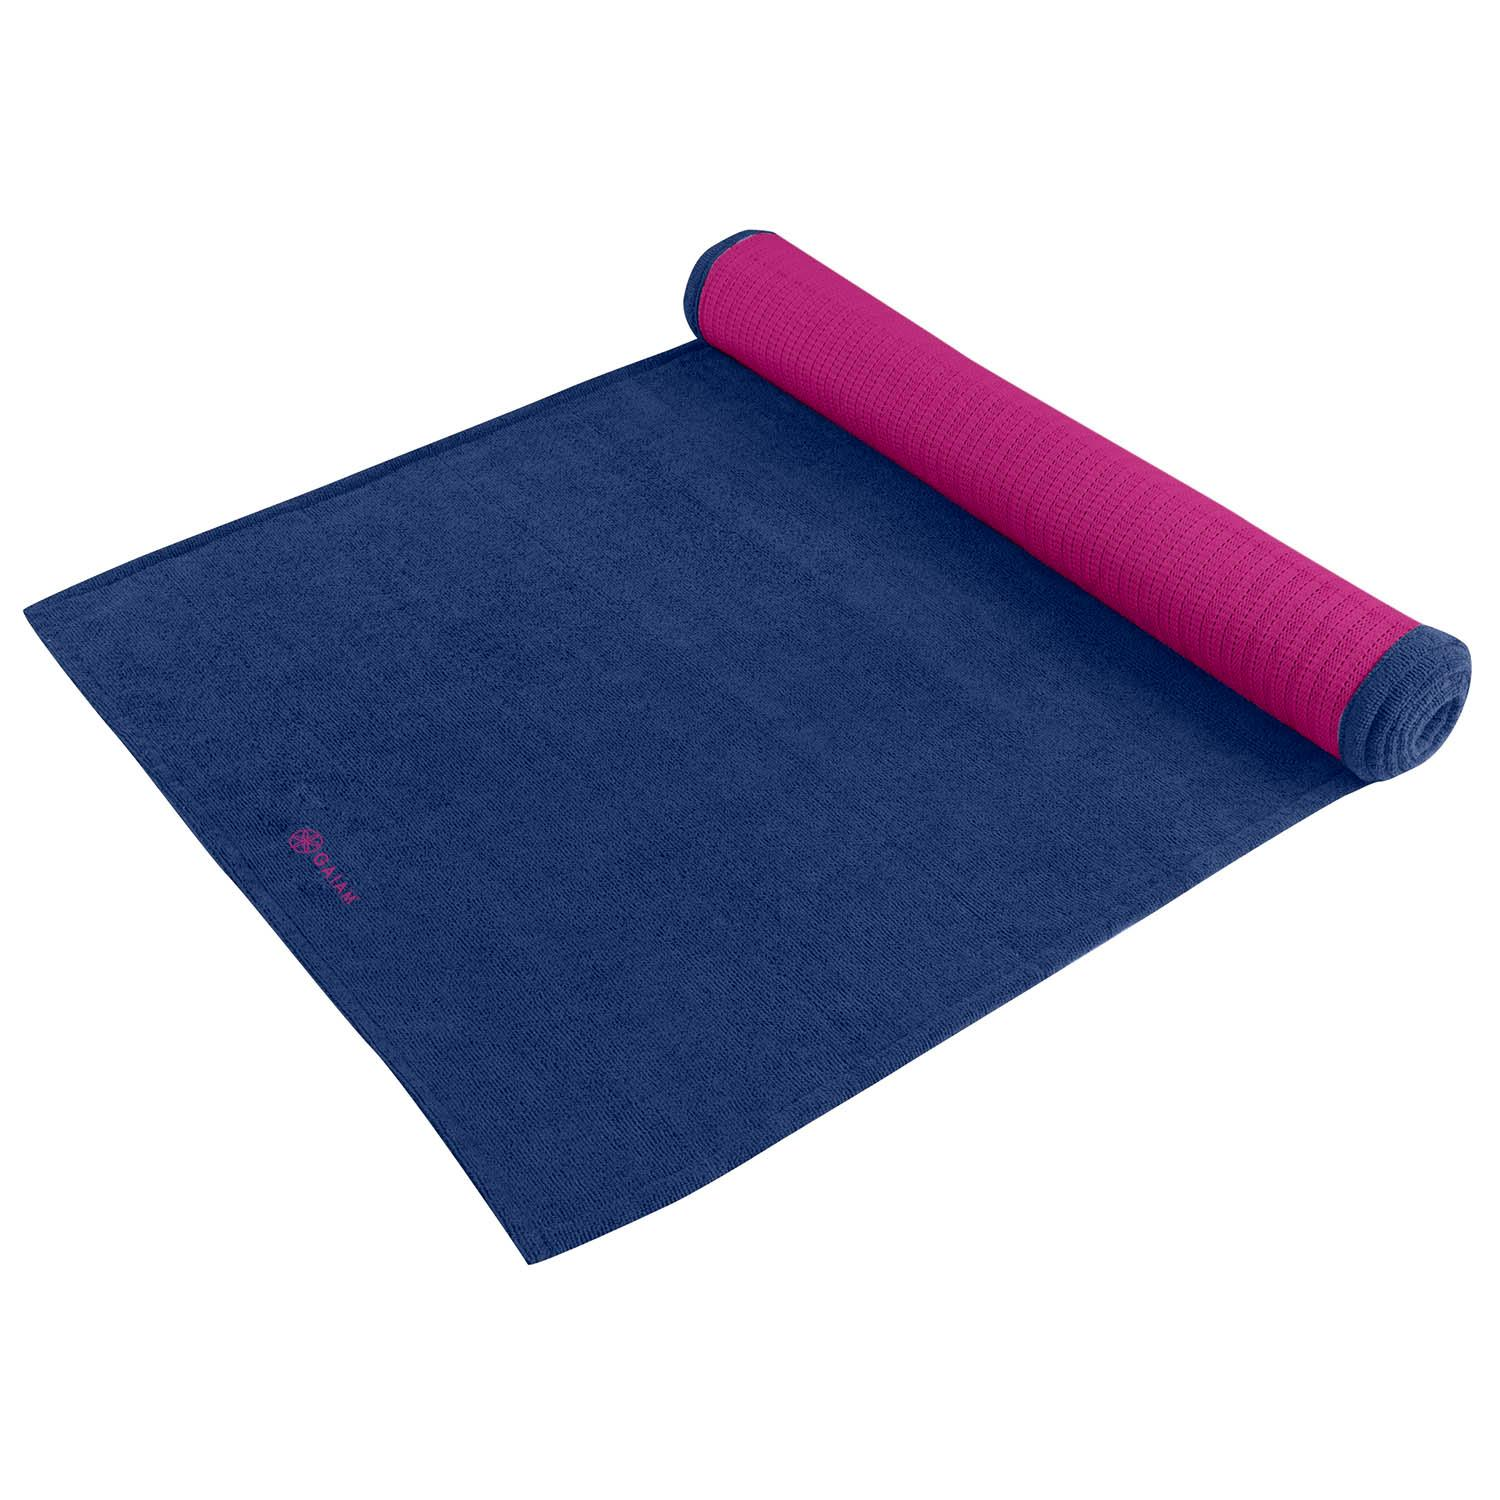 Amazon.com : Gaiam Grippy Yoga Mat Towel, Blue/Fuchsia